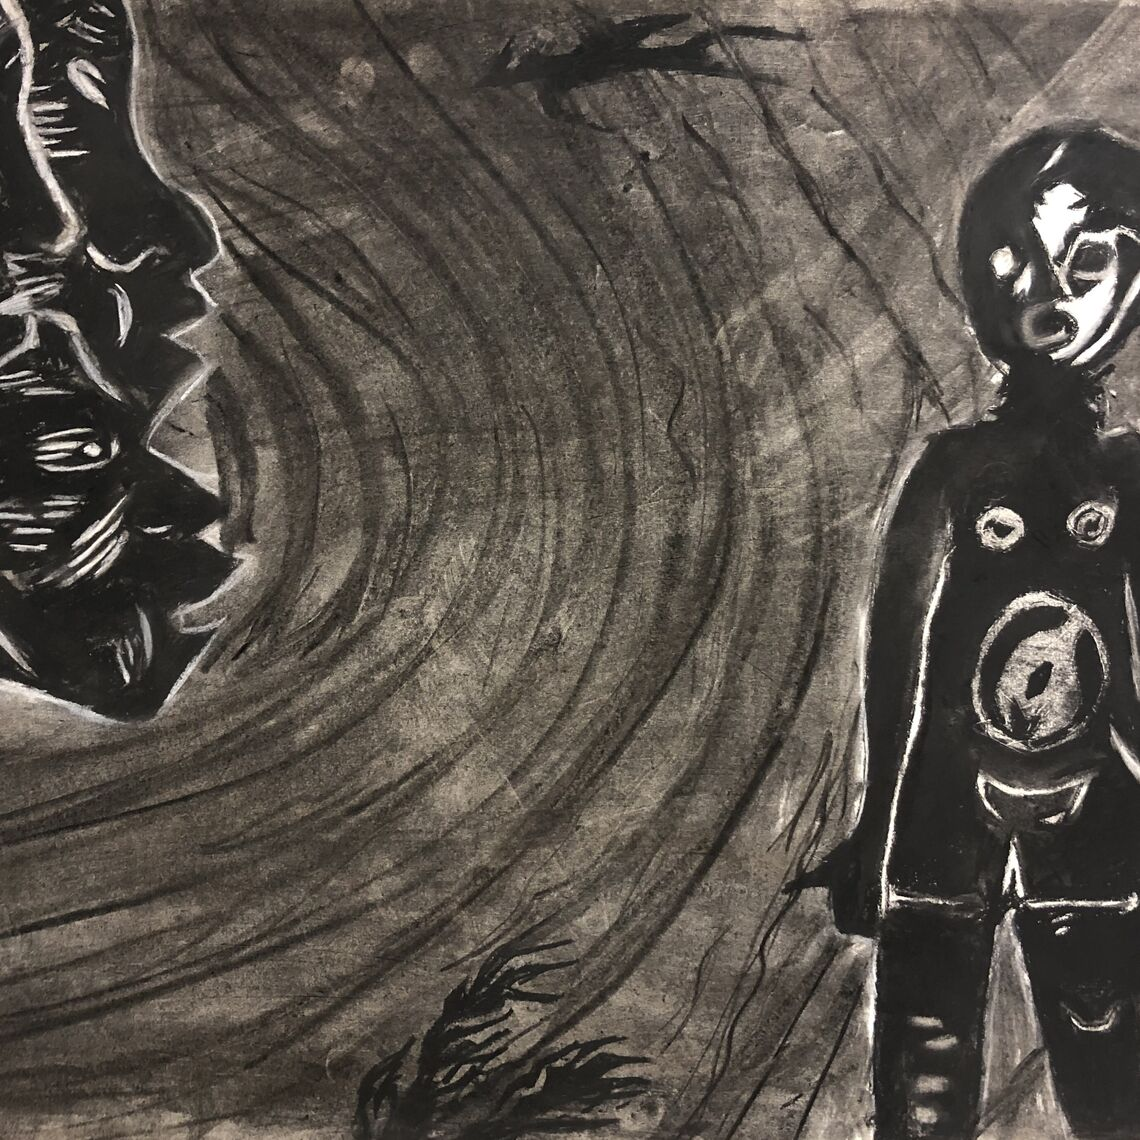 Charcoal illustrations by Jevelson Jean '21